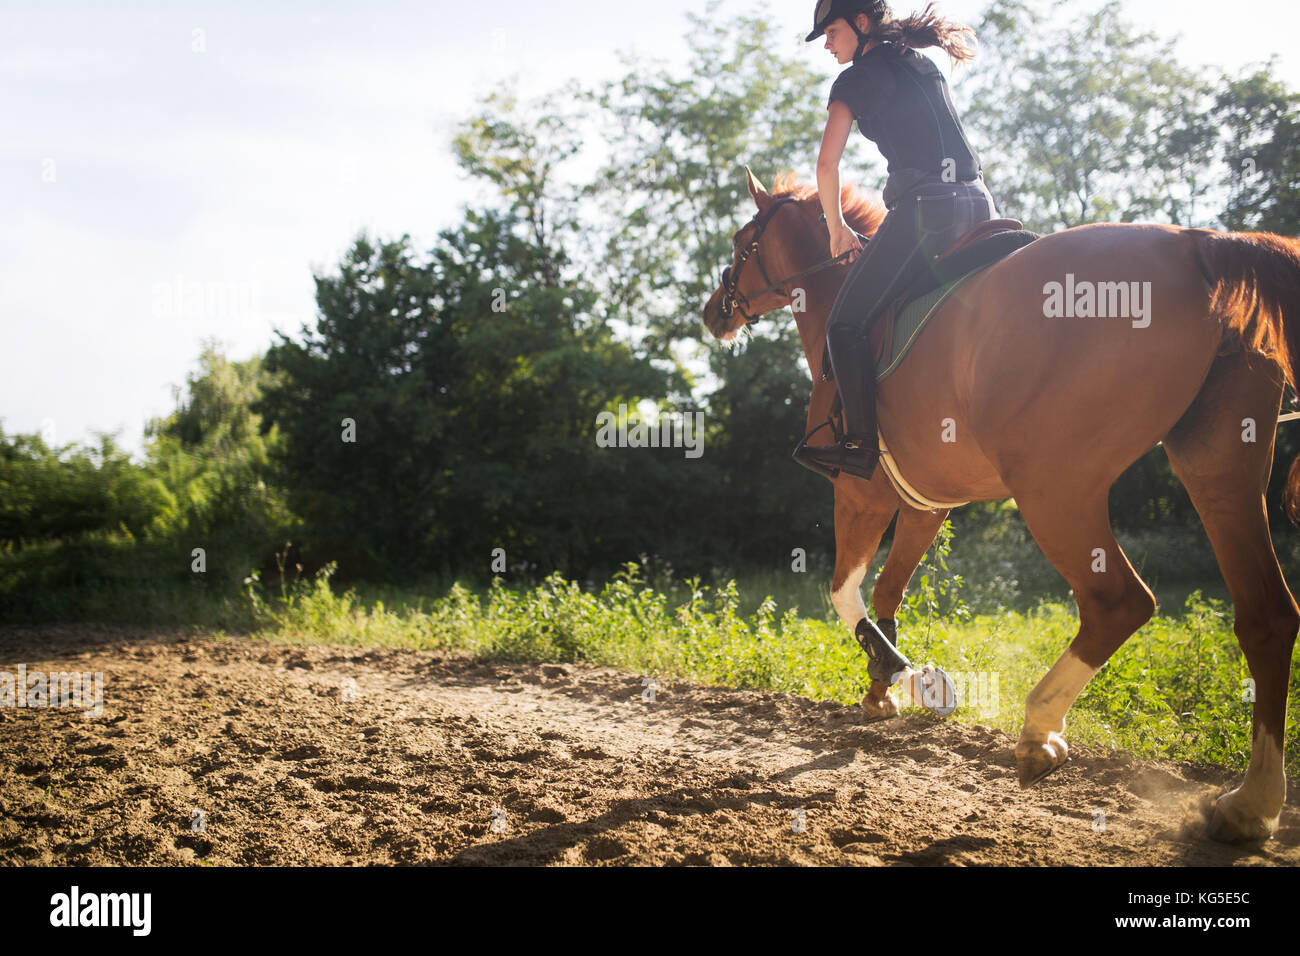 Portrait of young woman riding horse in countryside - Stock Image